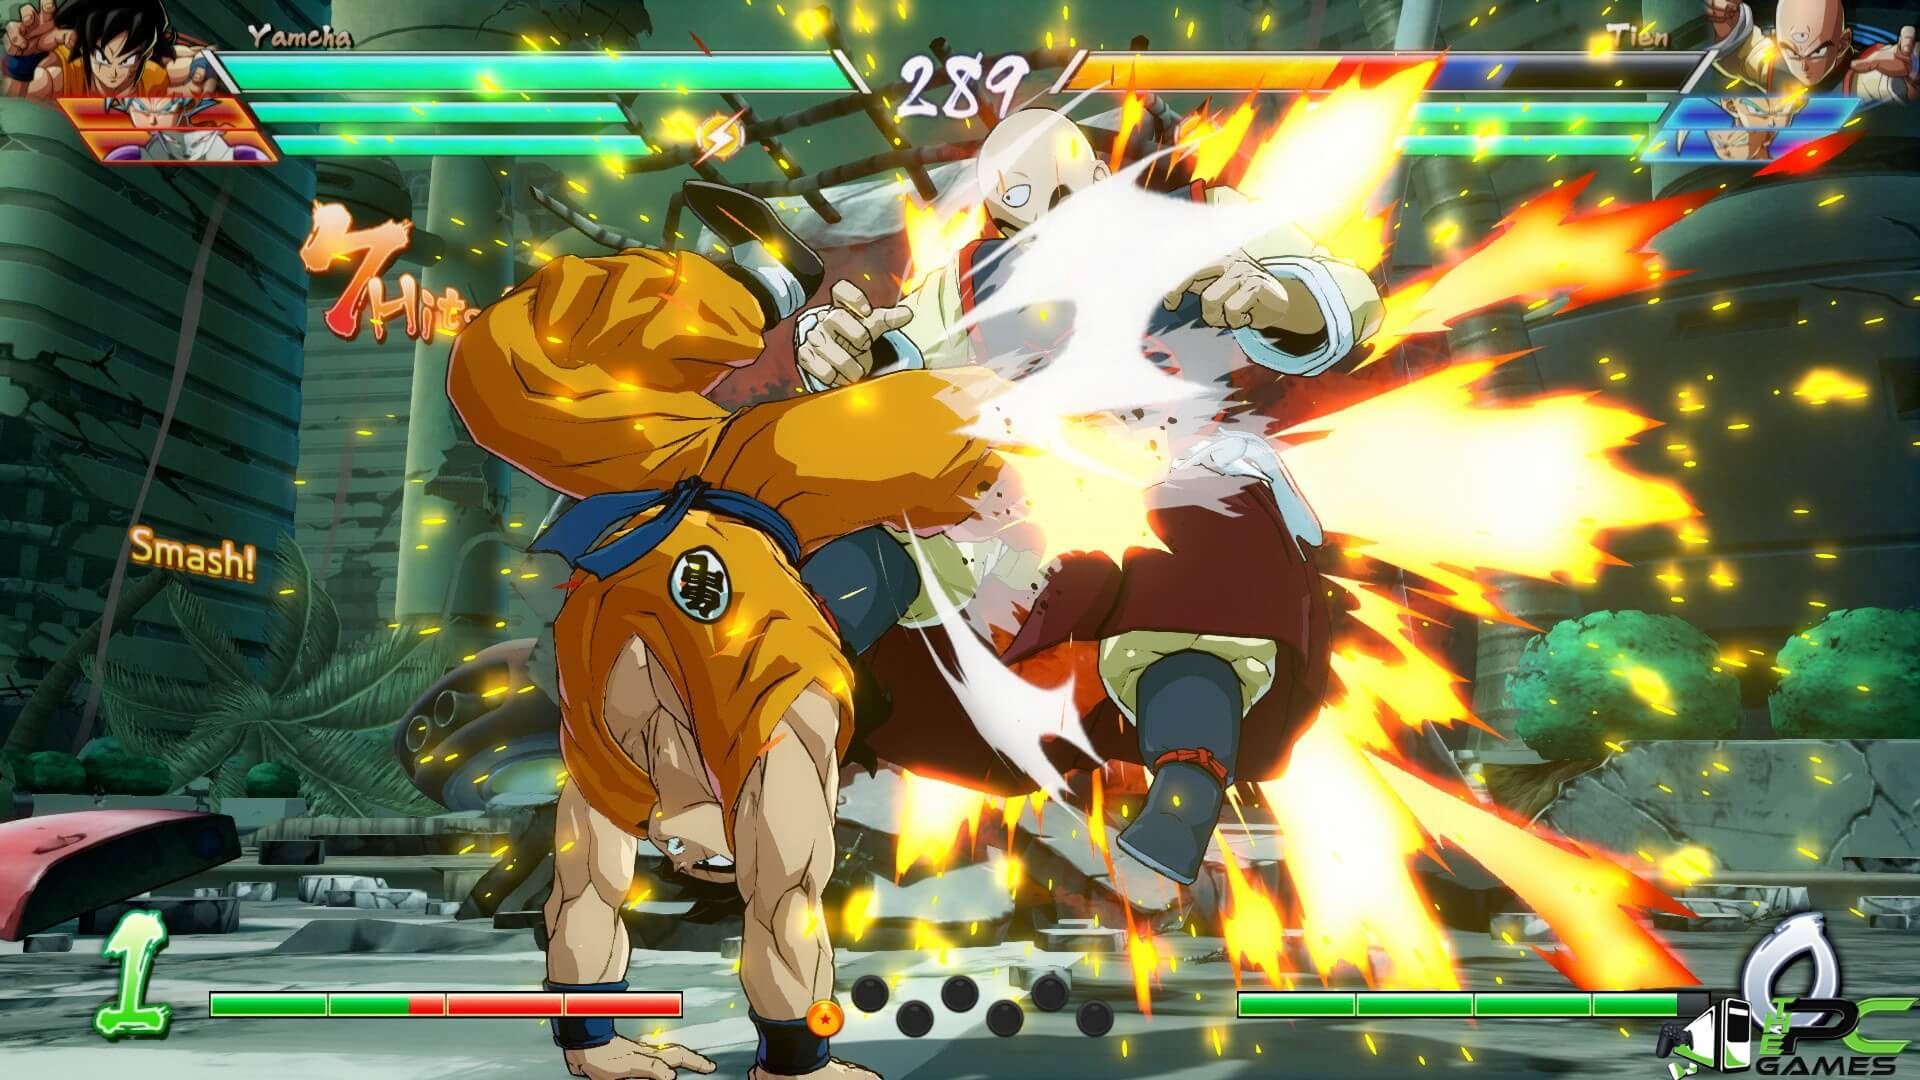 Top 15 Best Dragon Ball Games, Ranked - Twinfinite